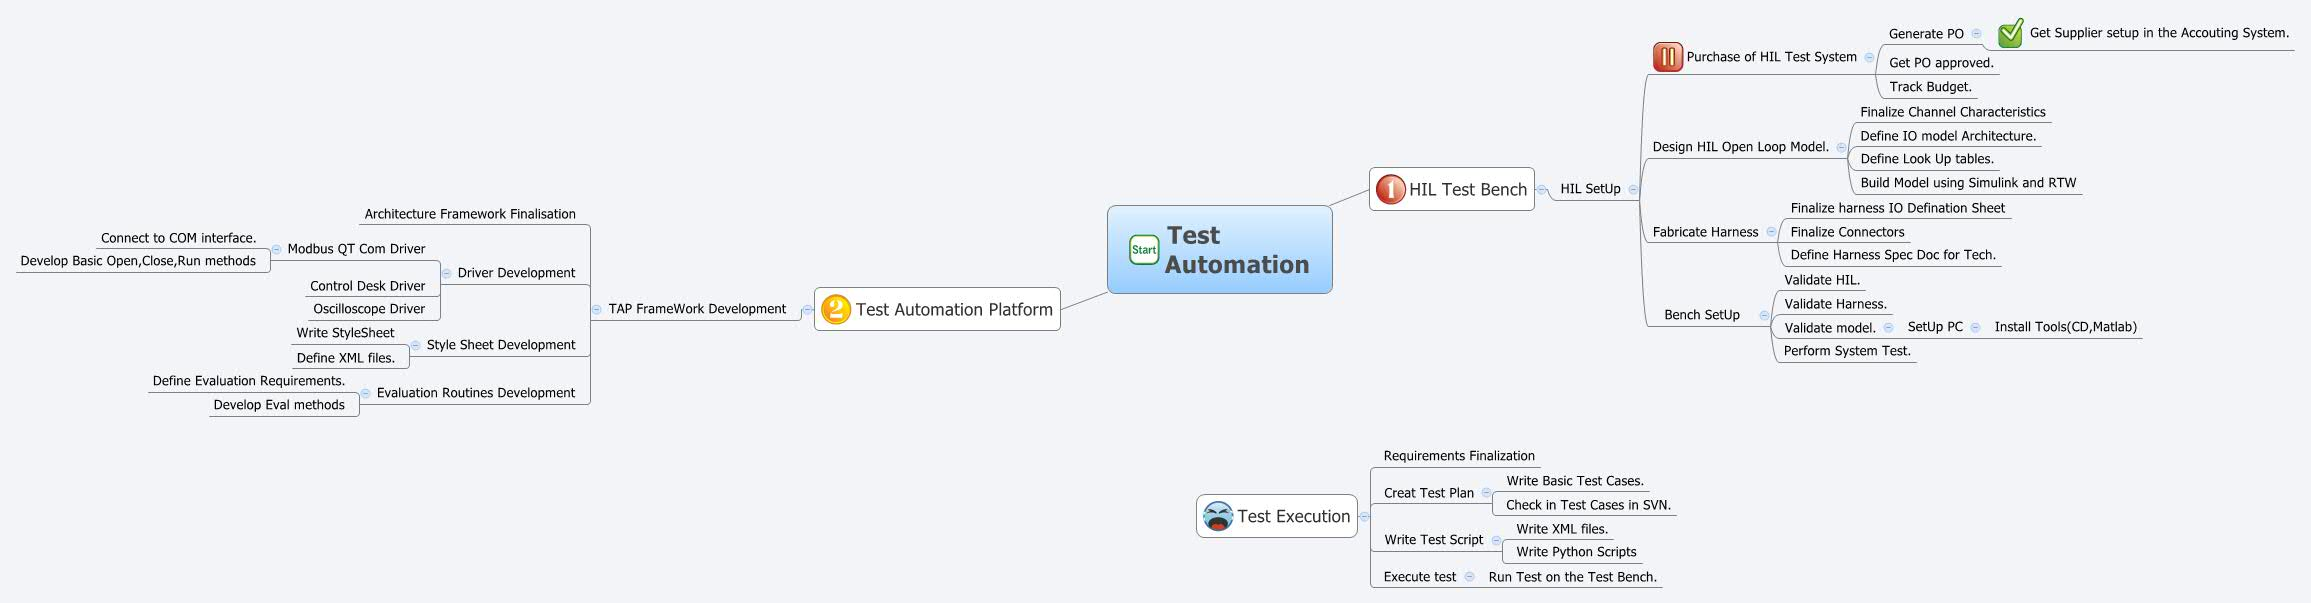 Test Automation - XMind - Mind Mapping Software